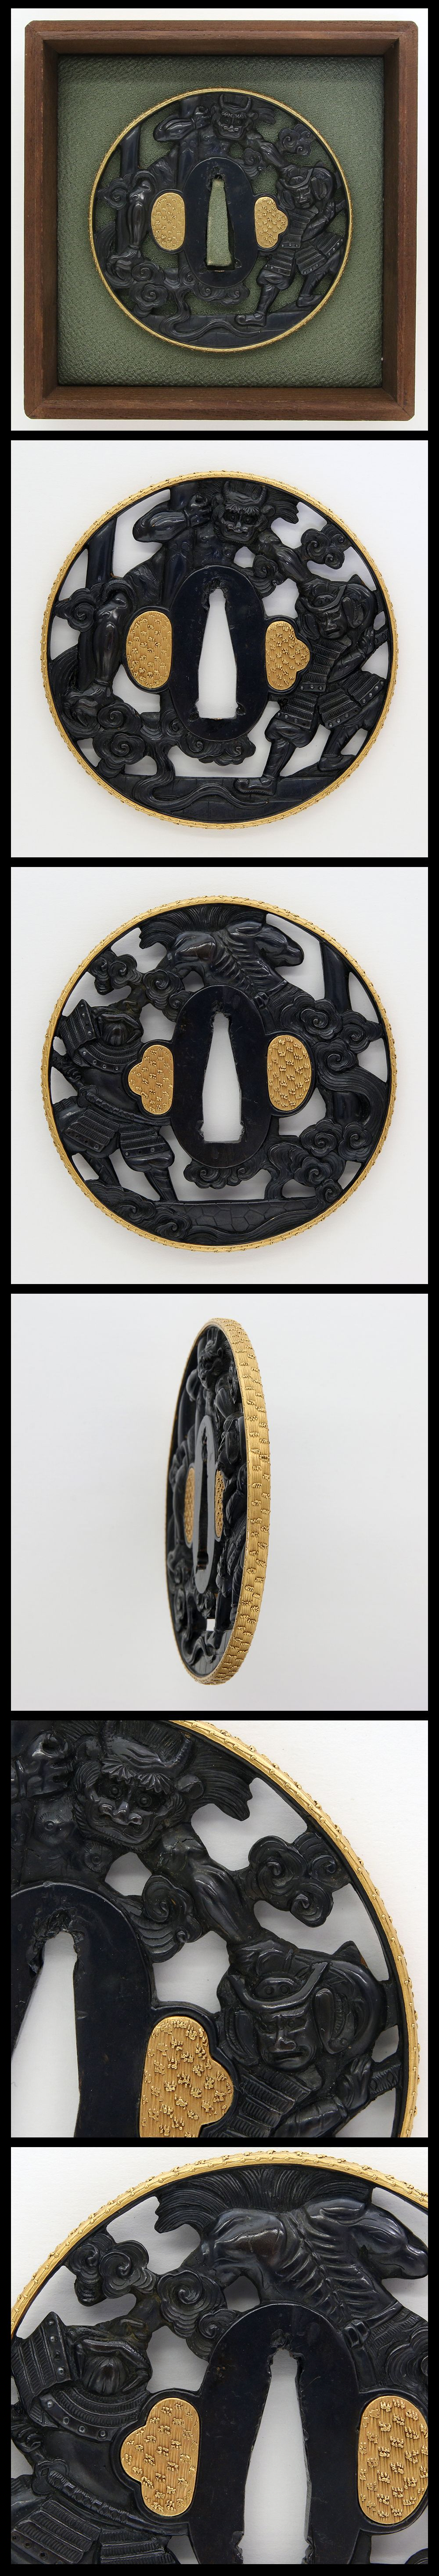 Edo Battle between Japanese demon 'Oni' and Watanabe Tsuna at Rashomon is engraved on Shakudo Tsuba. Rim is inlaid with gold.